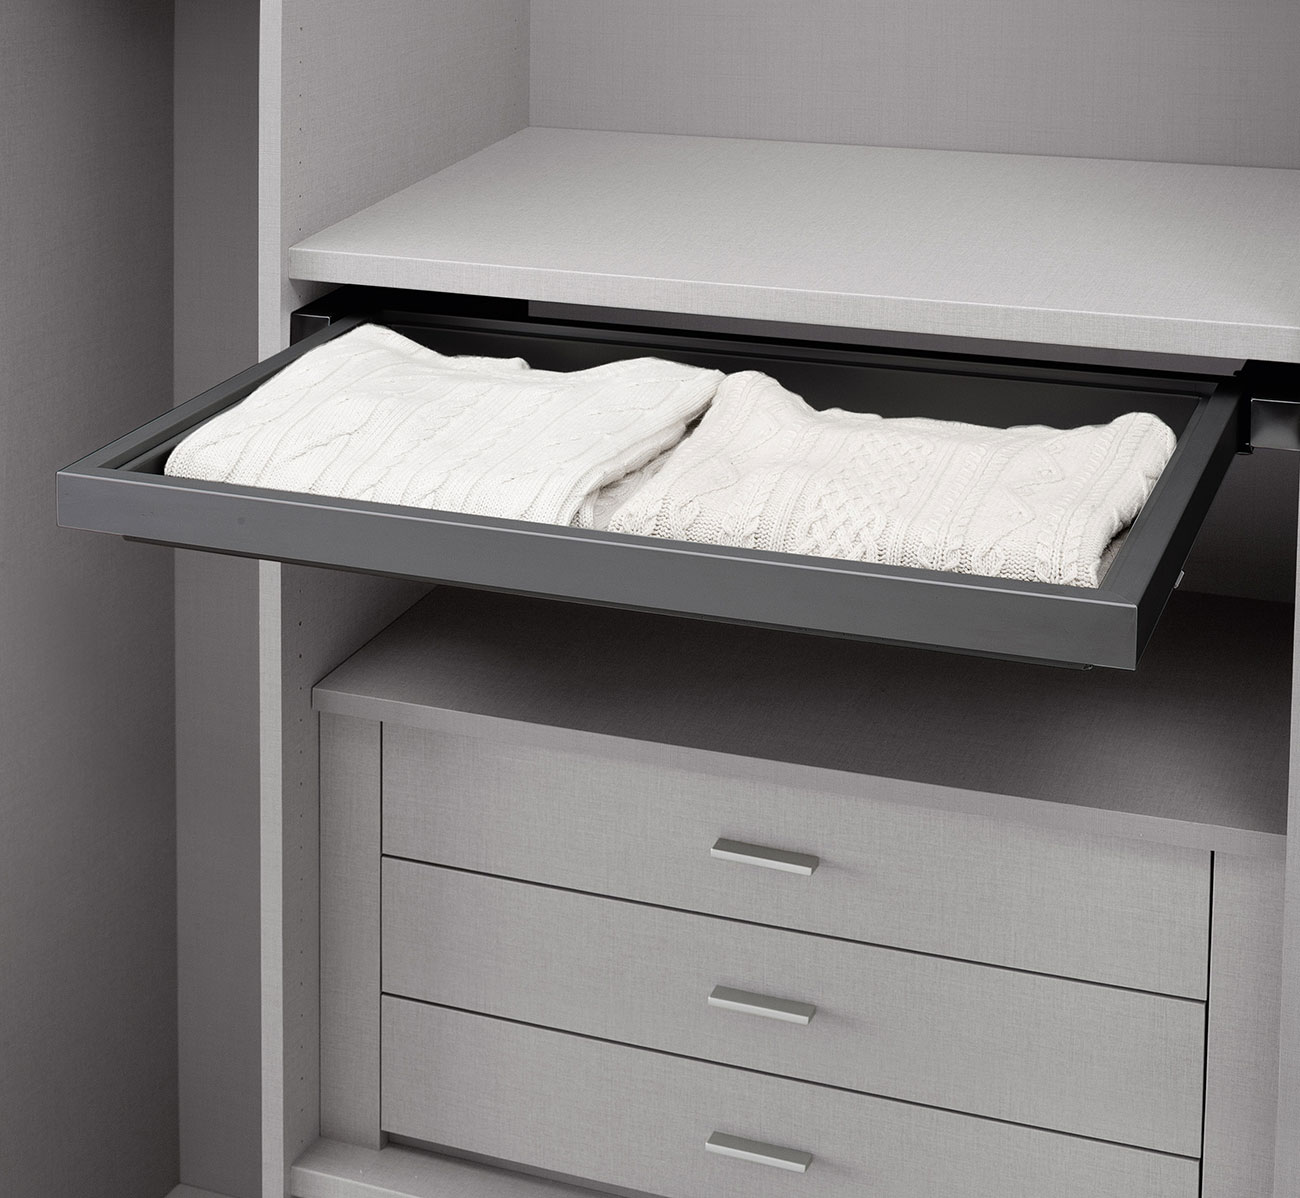 walk-in wardrobe with pull-out tray